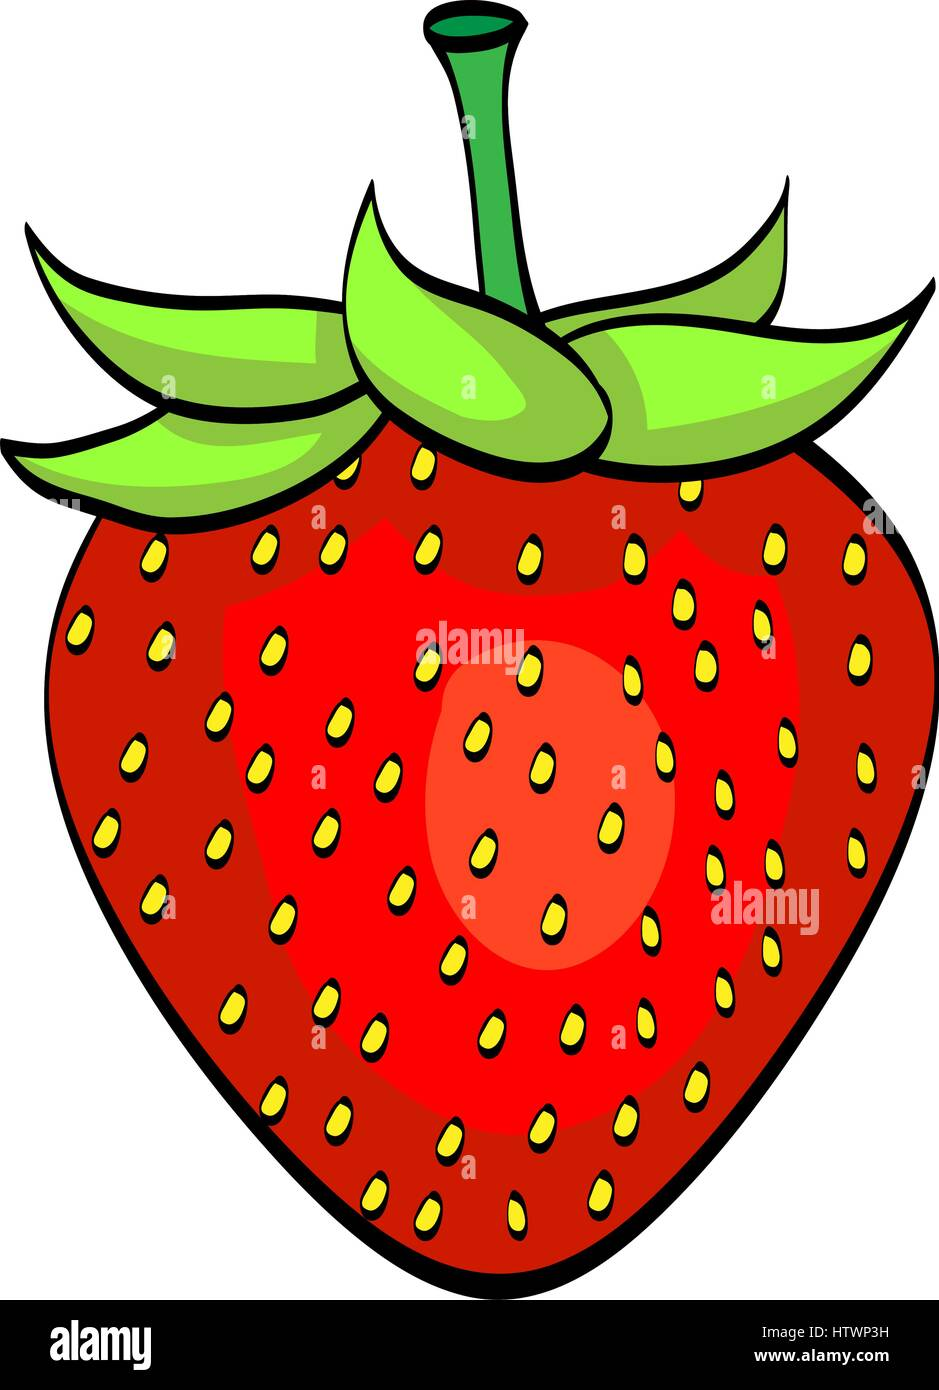 Cartoon Strawberry High Resolution Stock Photography And Images Alamy